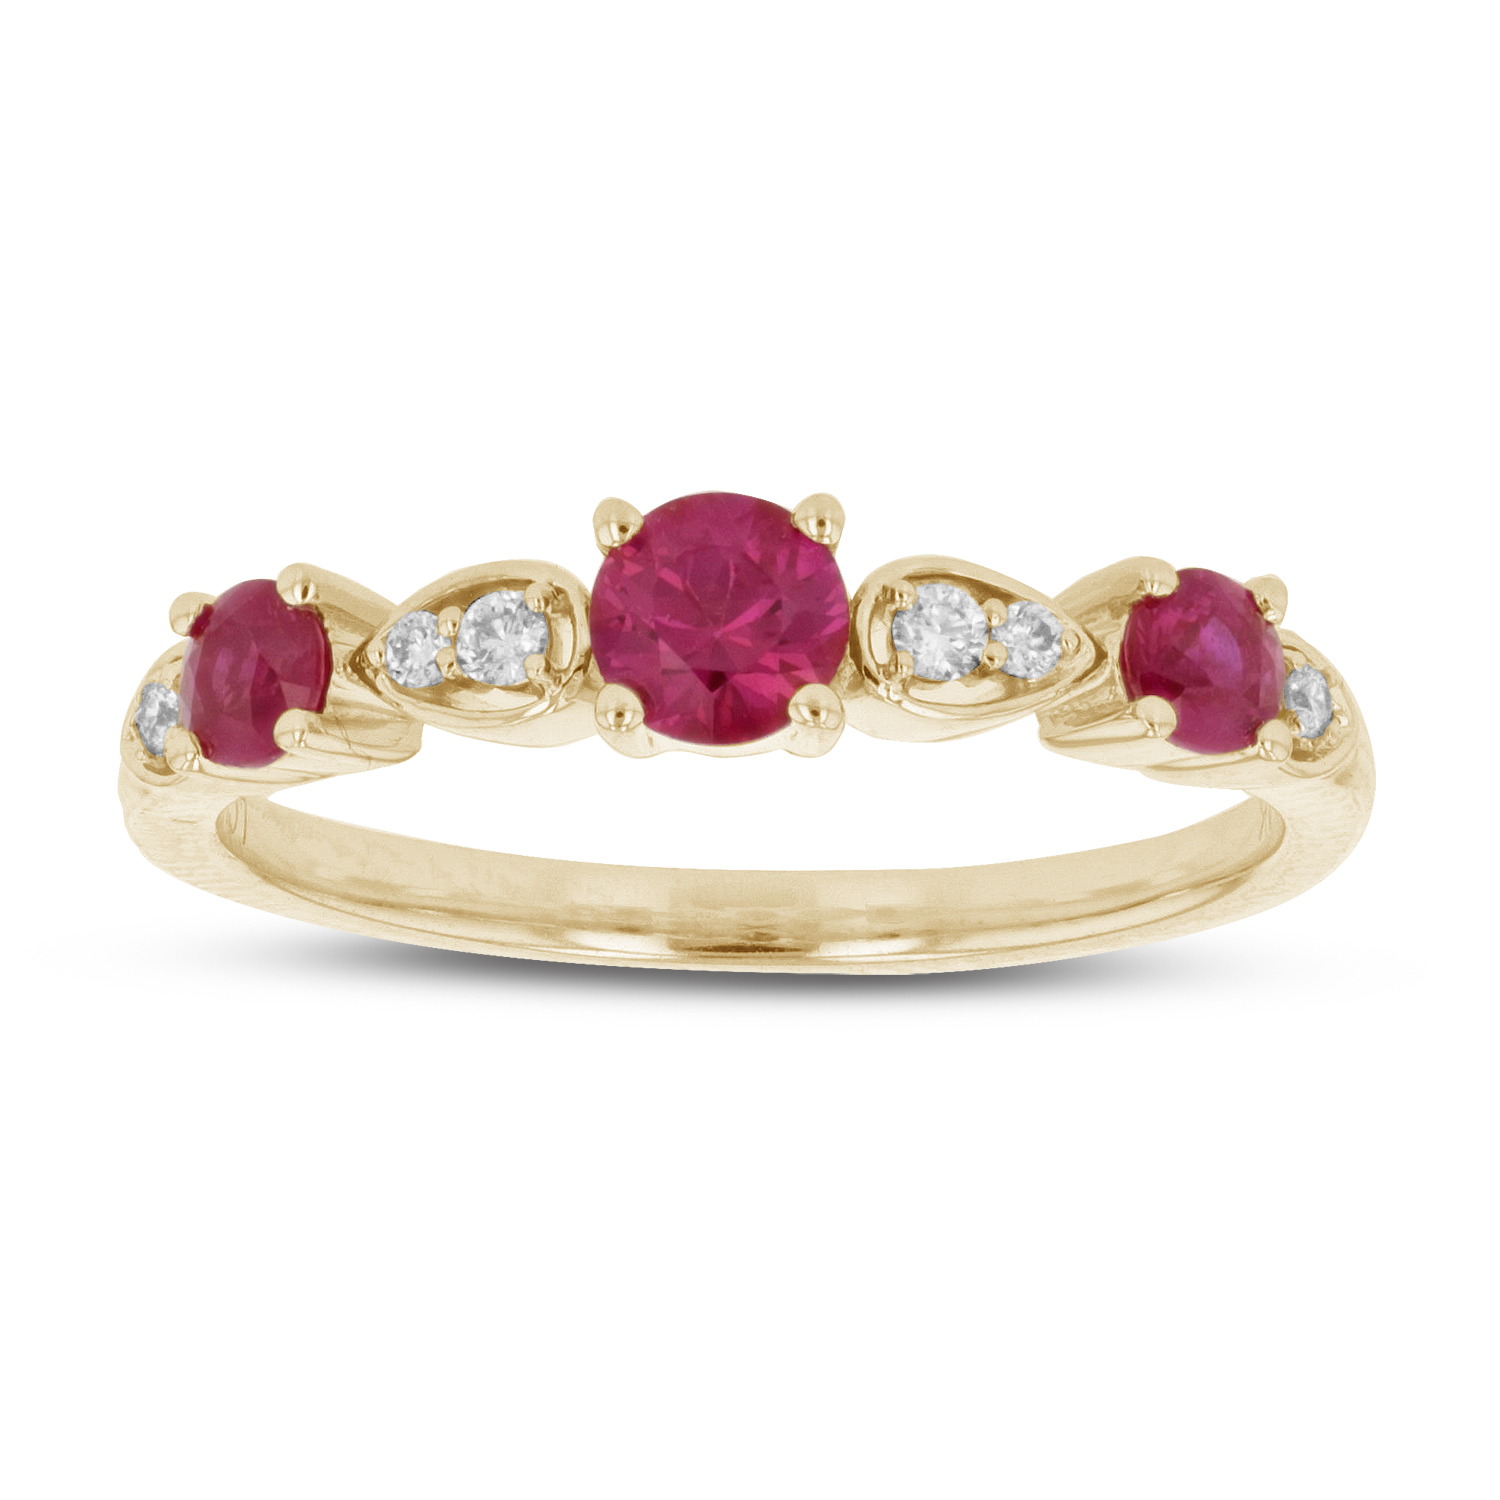 View 0.66ctw Diamond and Ruby Band in 14k Yellow Gold